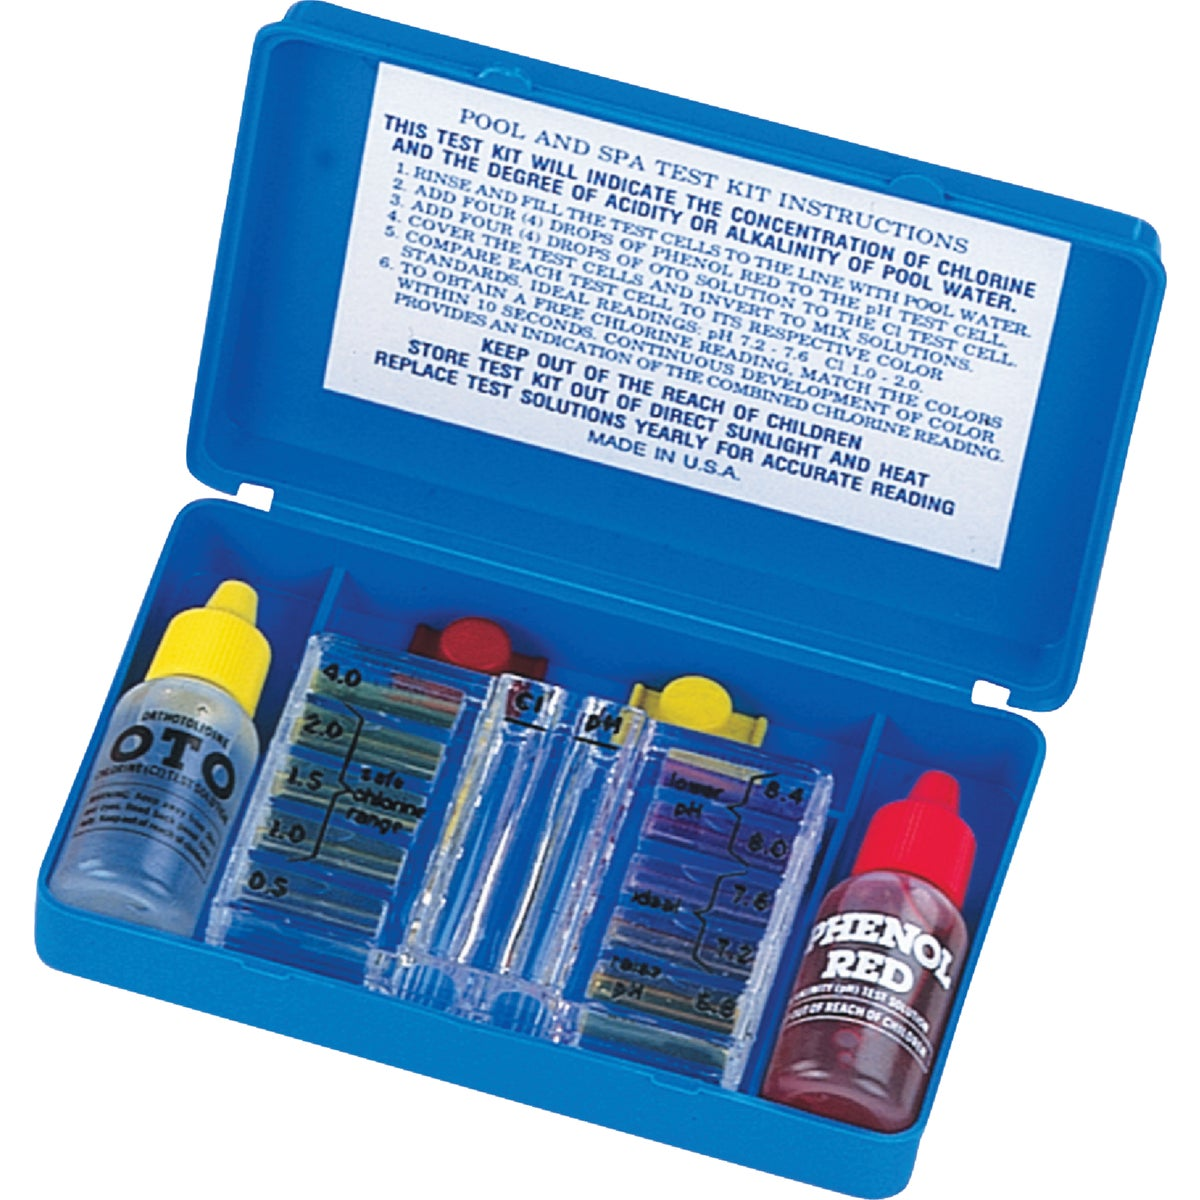 POOL SPA TEST KIT